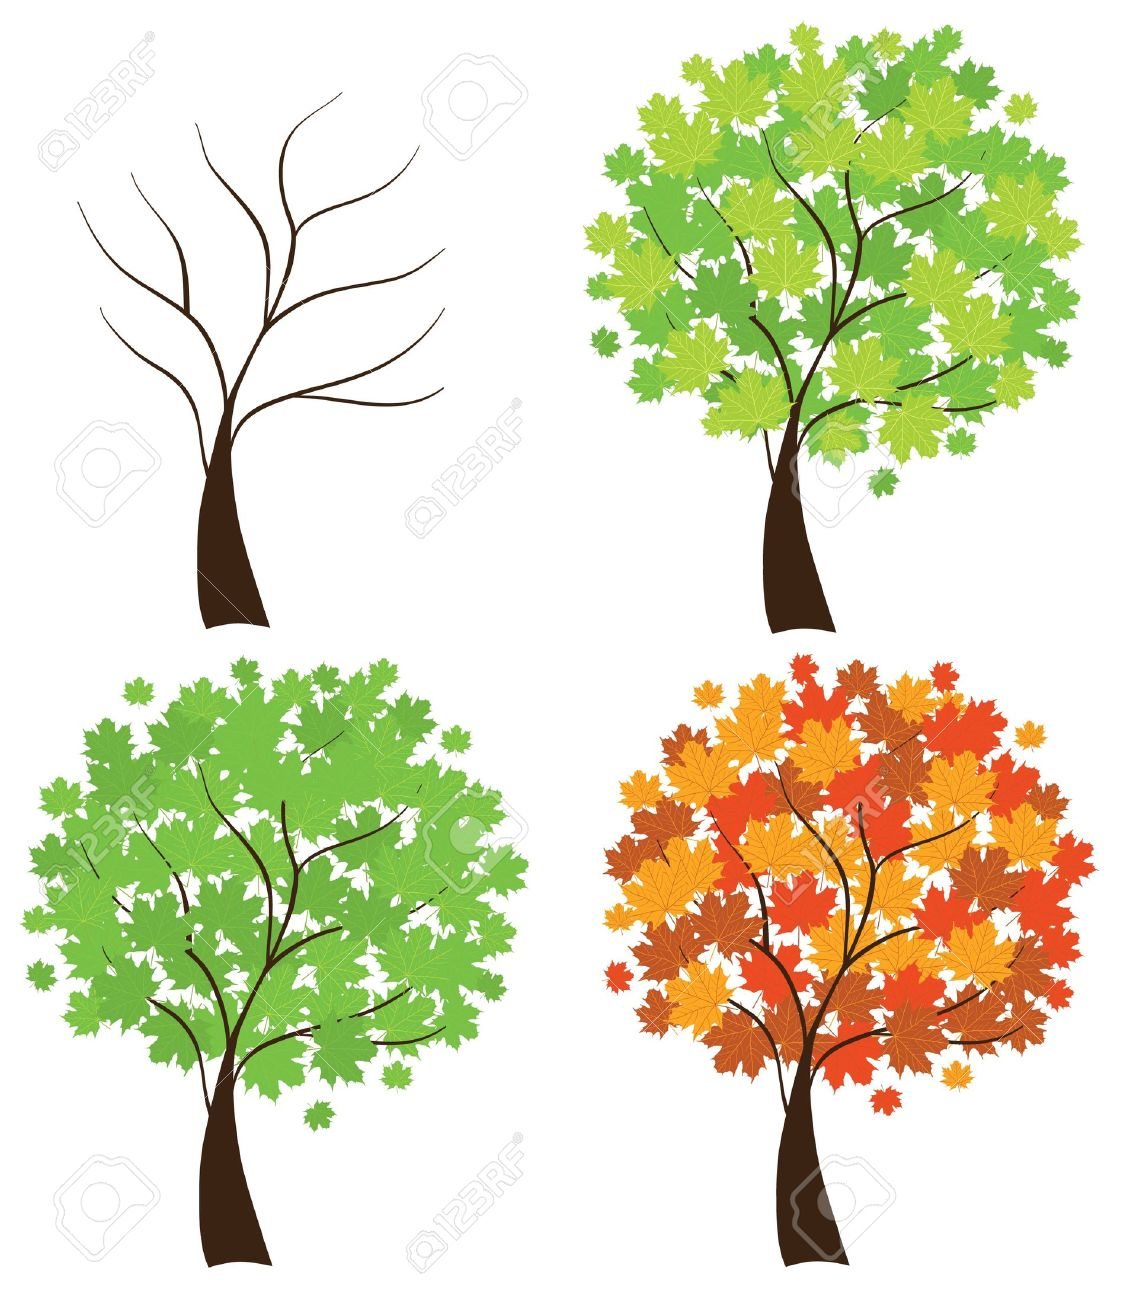 2267 Seasons free clipart.